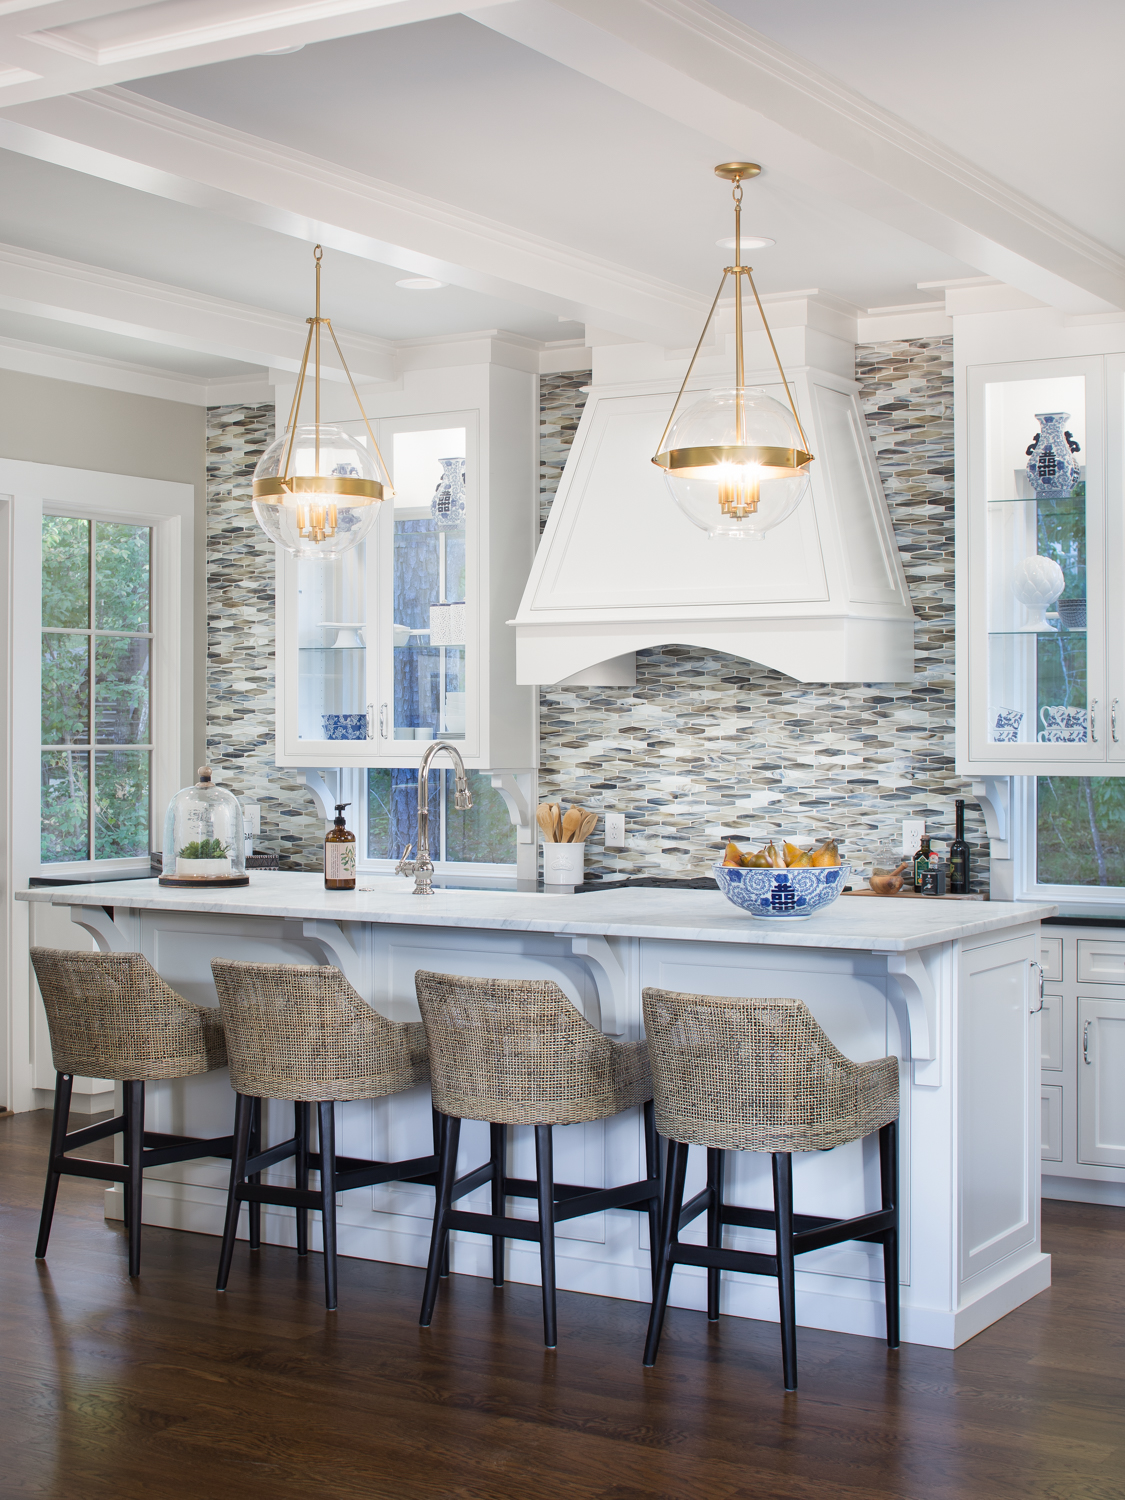 Town Builders, Inc. - Southern Living Custom Builder